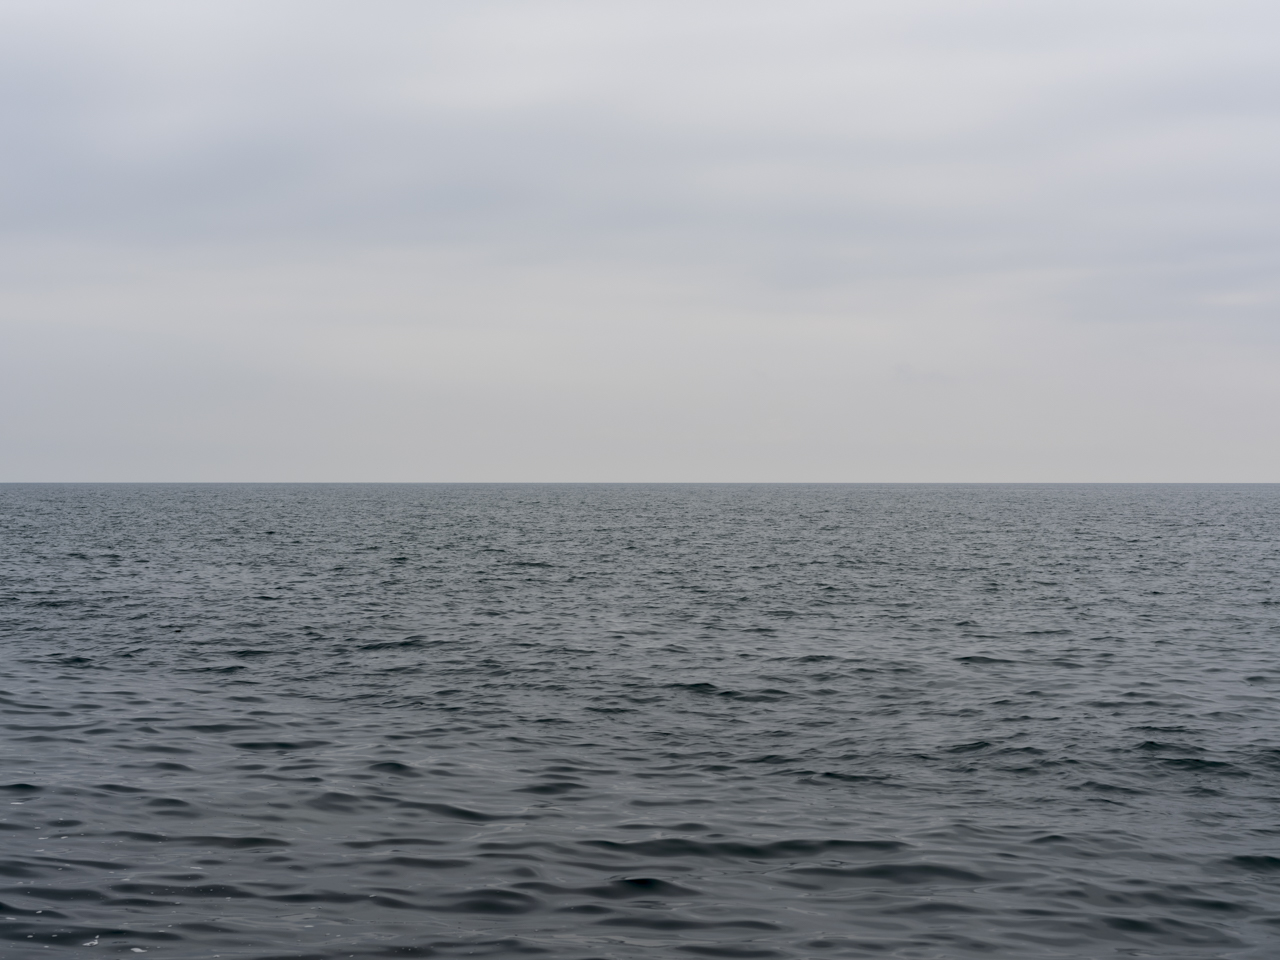 a flat gray sky and lake with low light